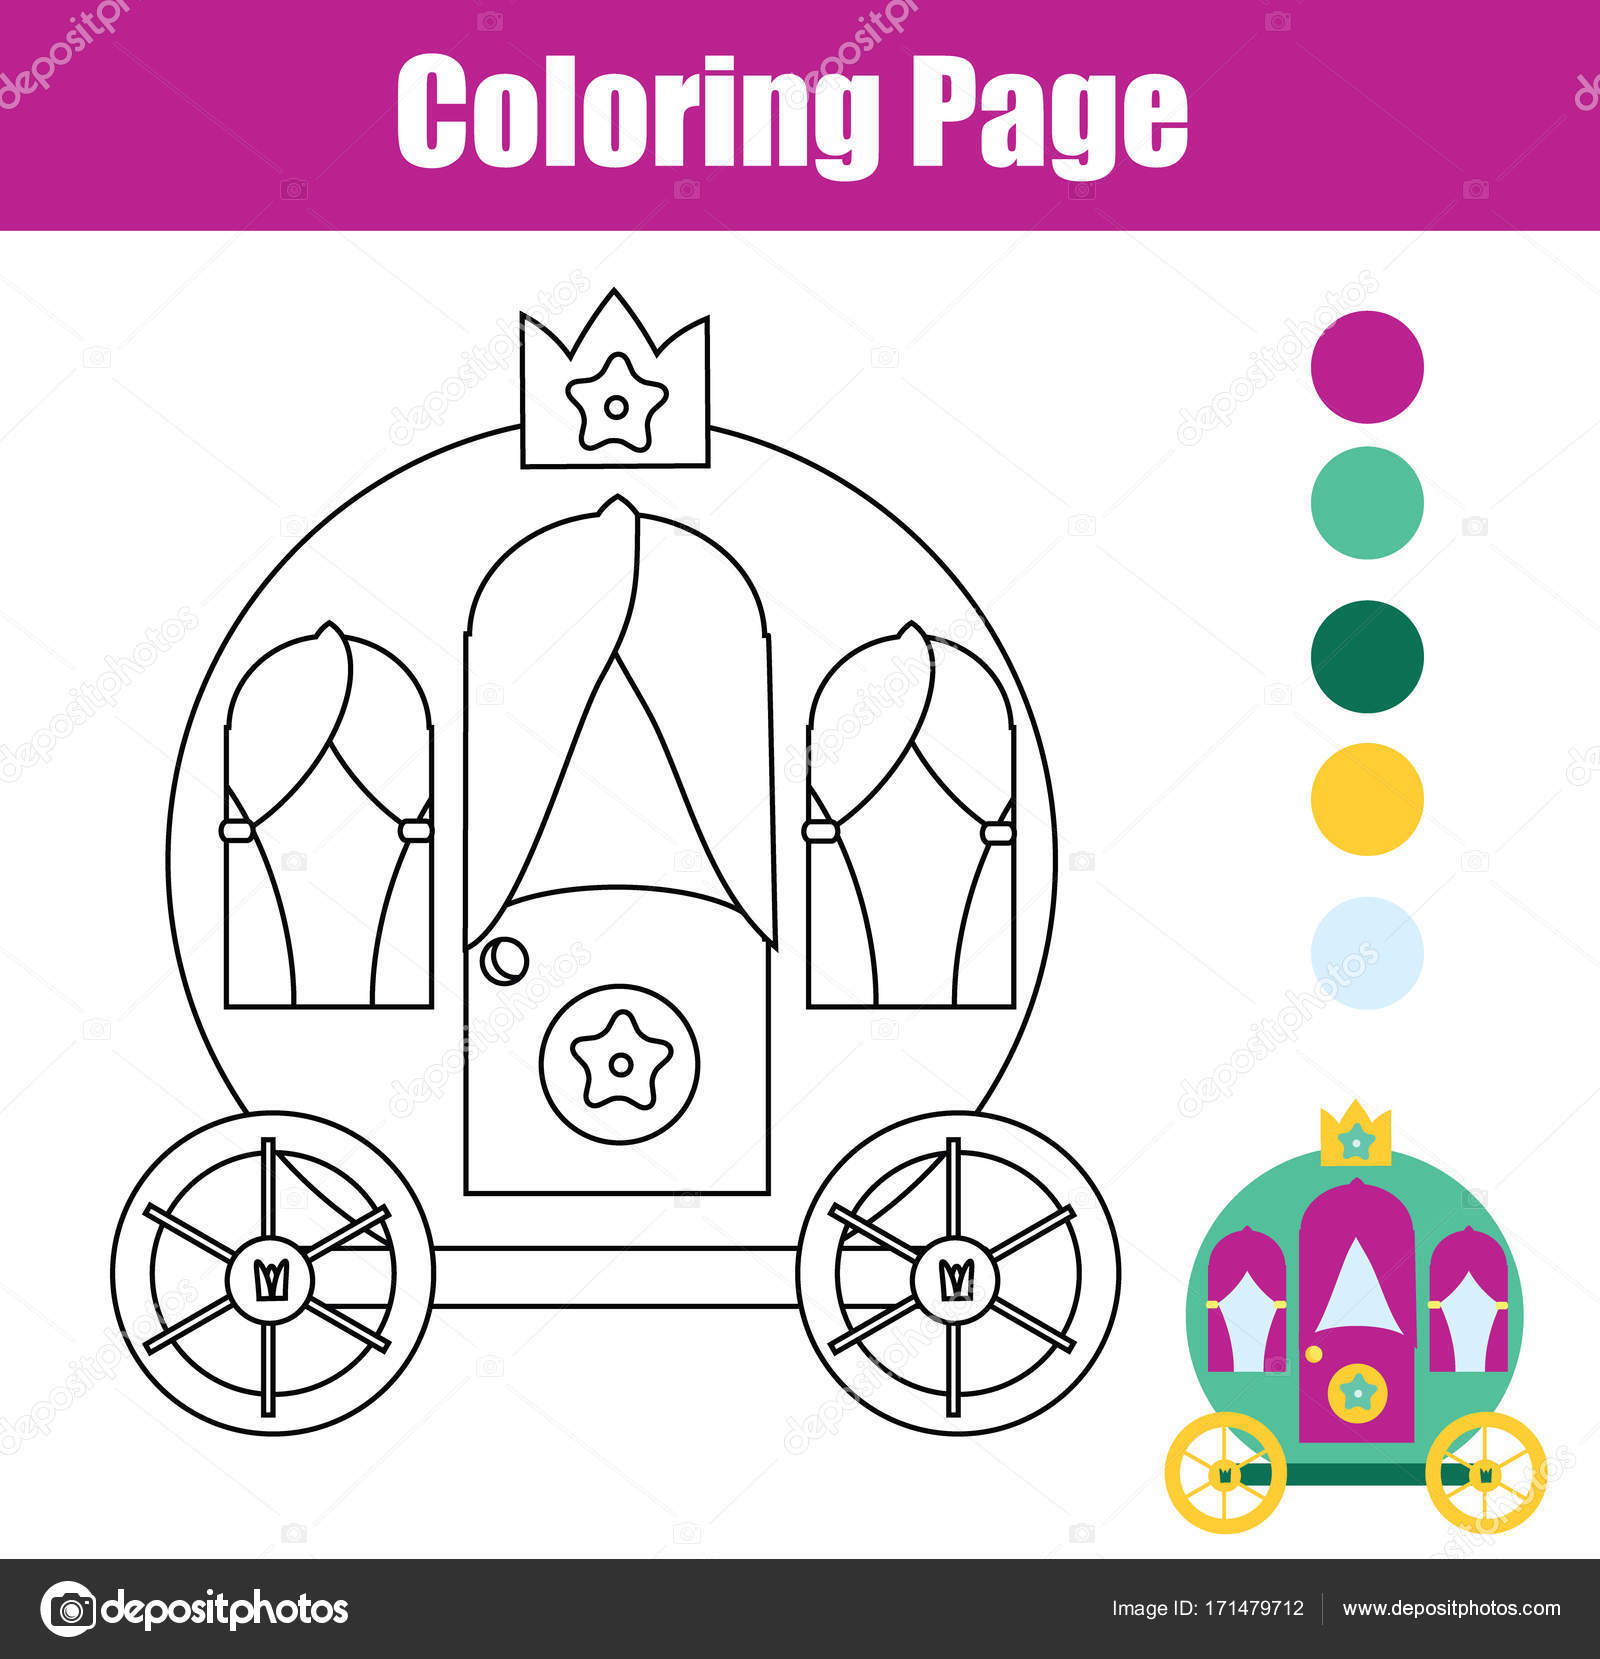 Coloring Page With Princess Carriage Drawing Kids Game Printable